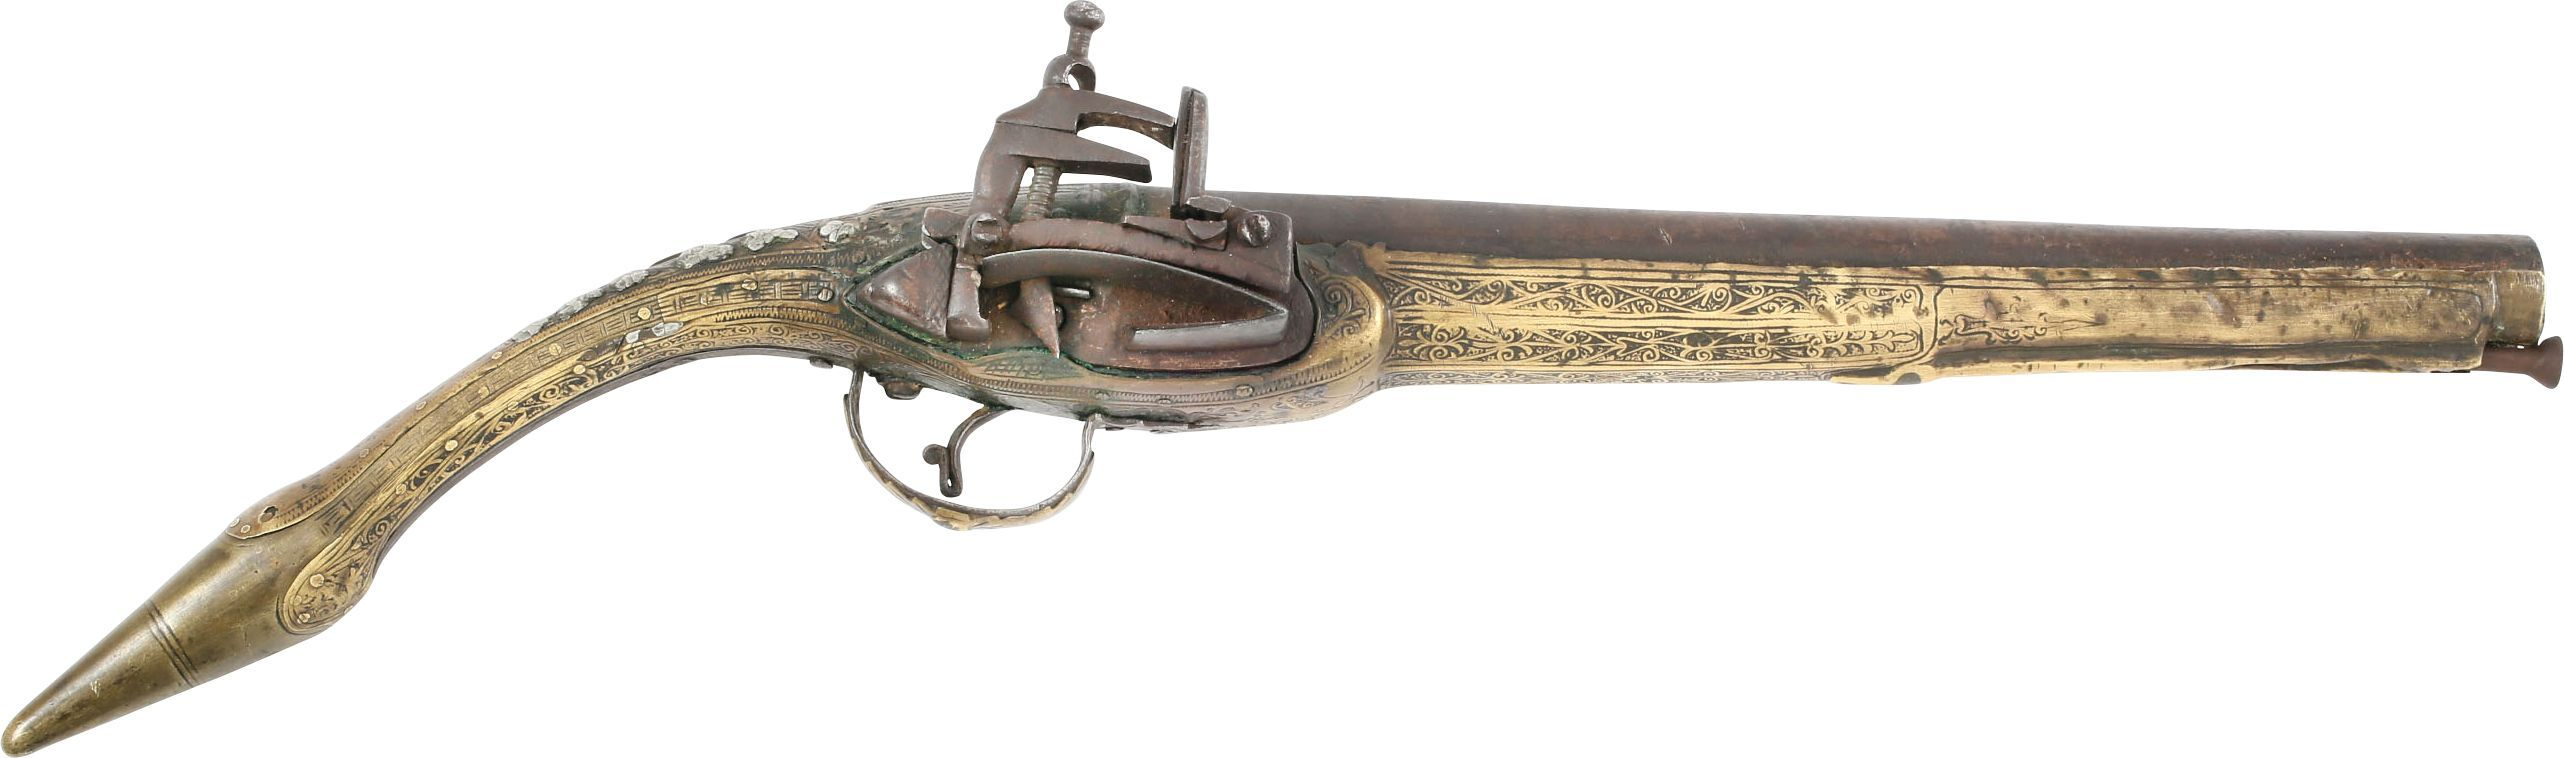 ALBANIAN (OTTOMAN) MIQUELET LOCK PISTOL C.1800-EARLY 19th CENTURY - Product